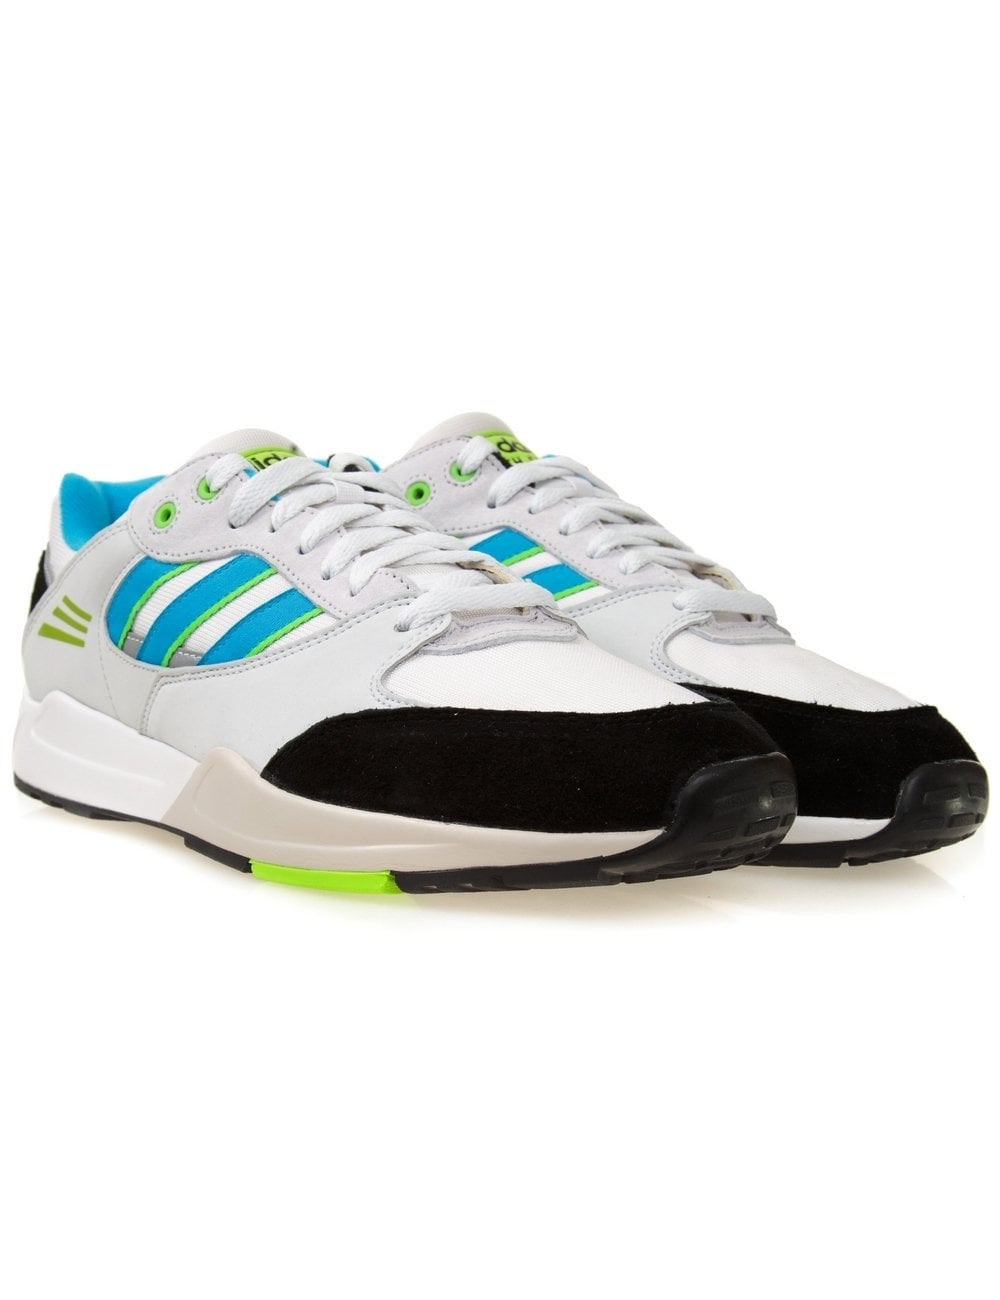 timeless design bfe85 2c0cf Adidas Originals Tech Super Shoes - Neo White